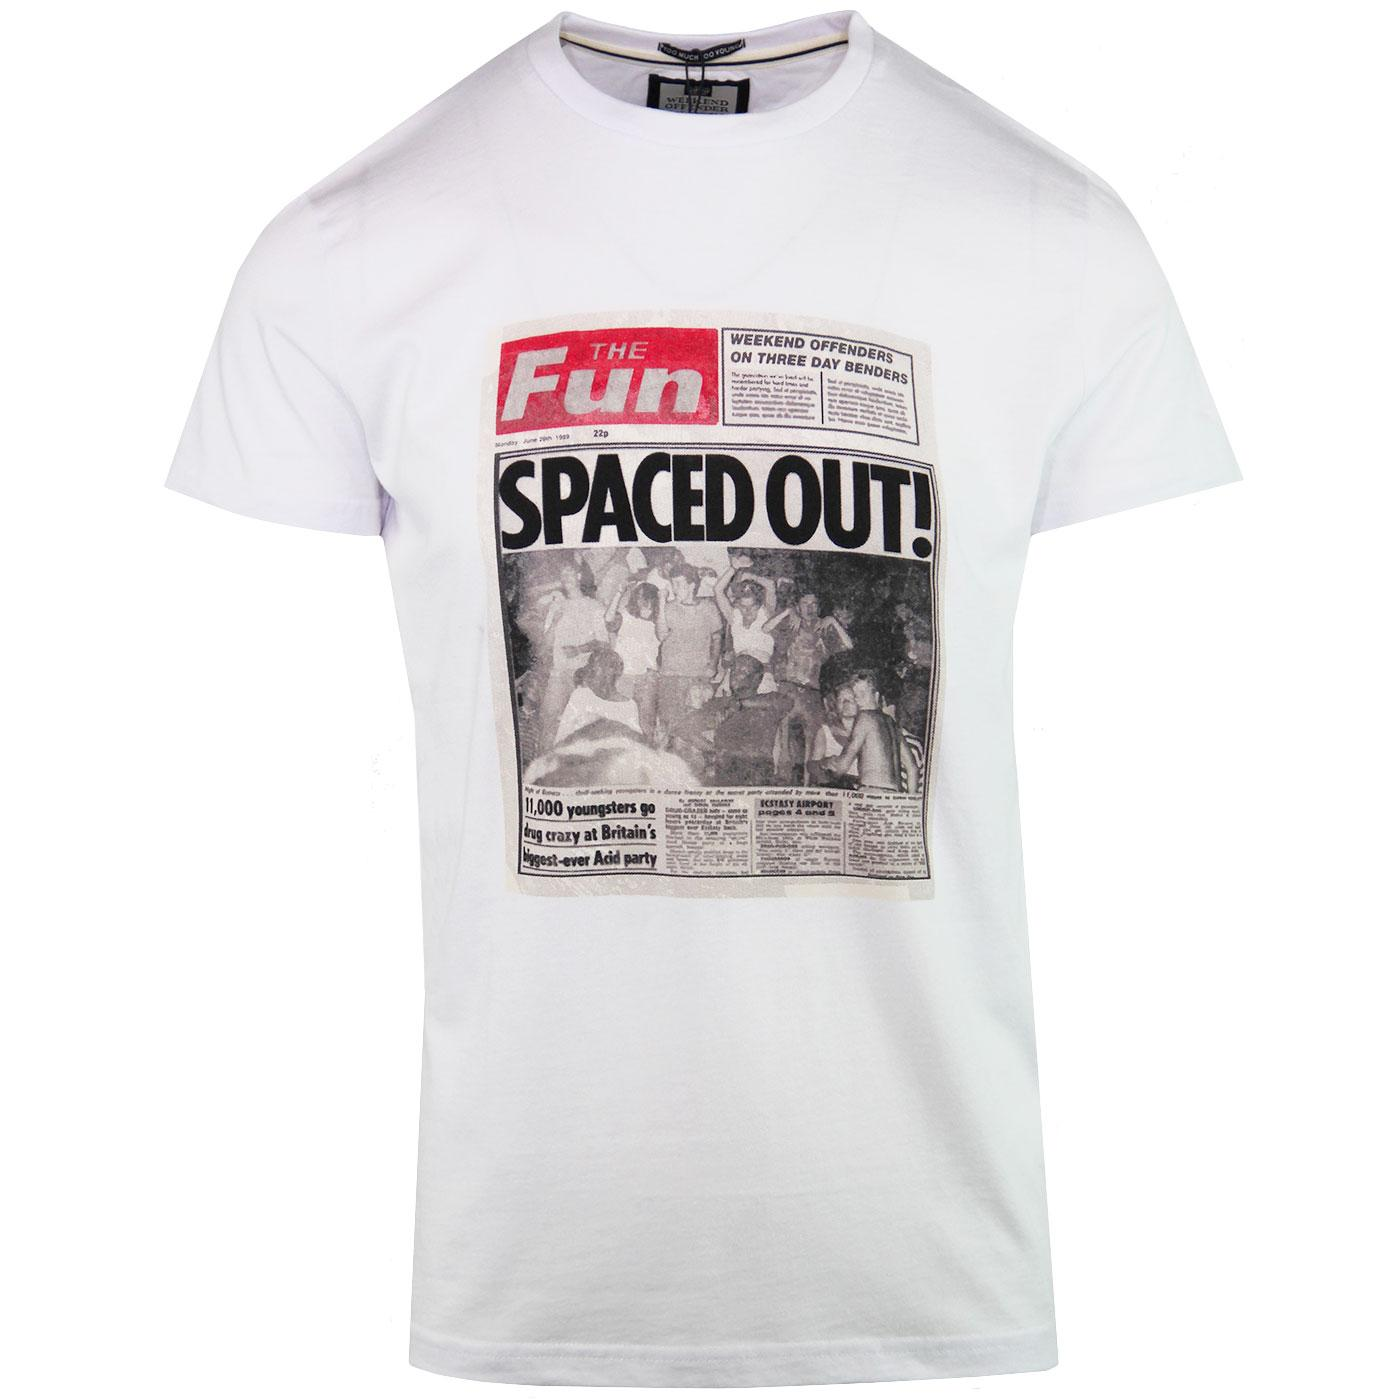 Spaced Out WEEKEND OFFENDER Retro 90s Acid Tee